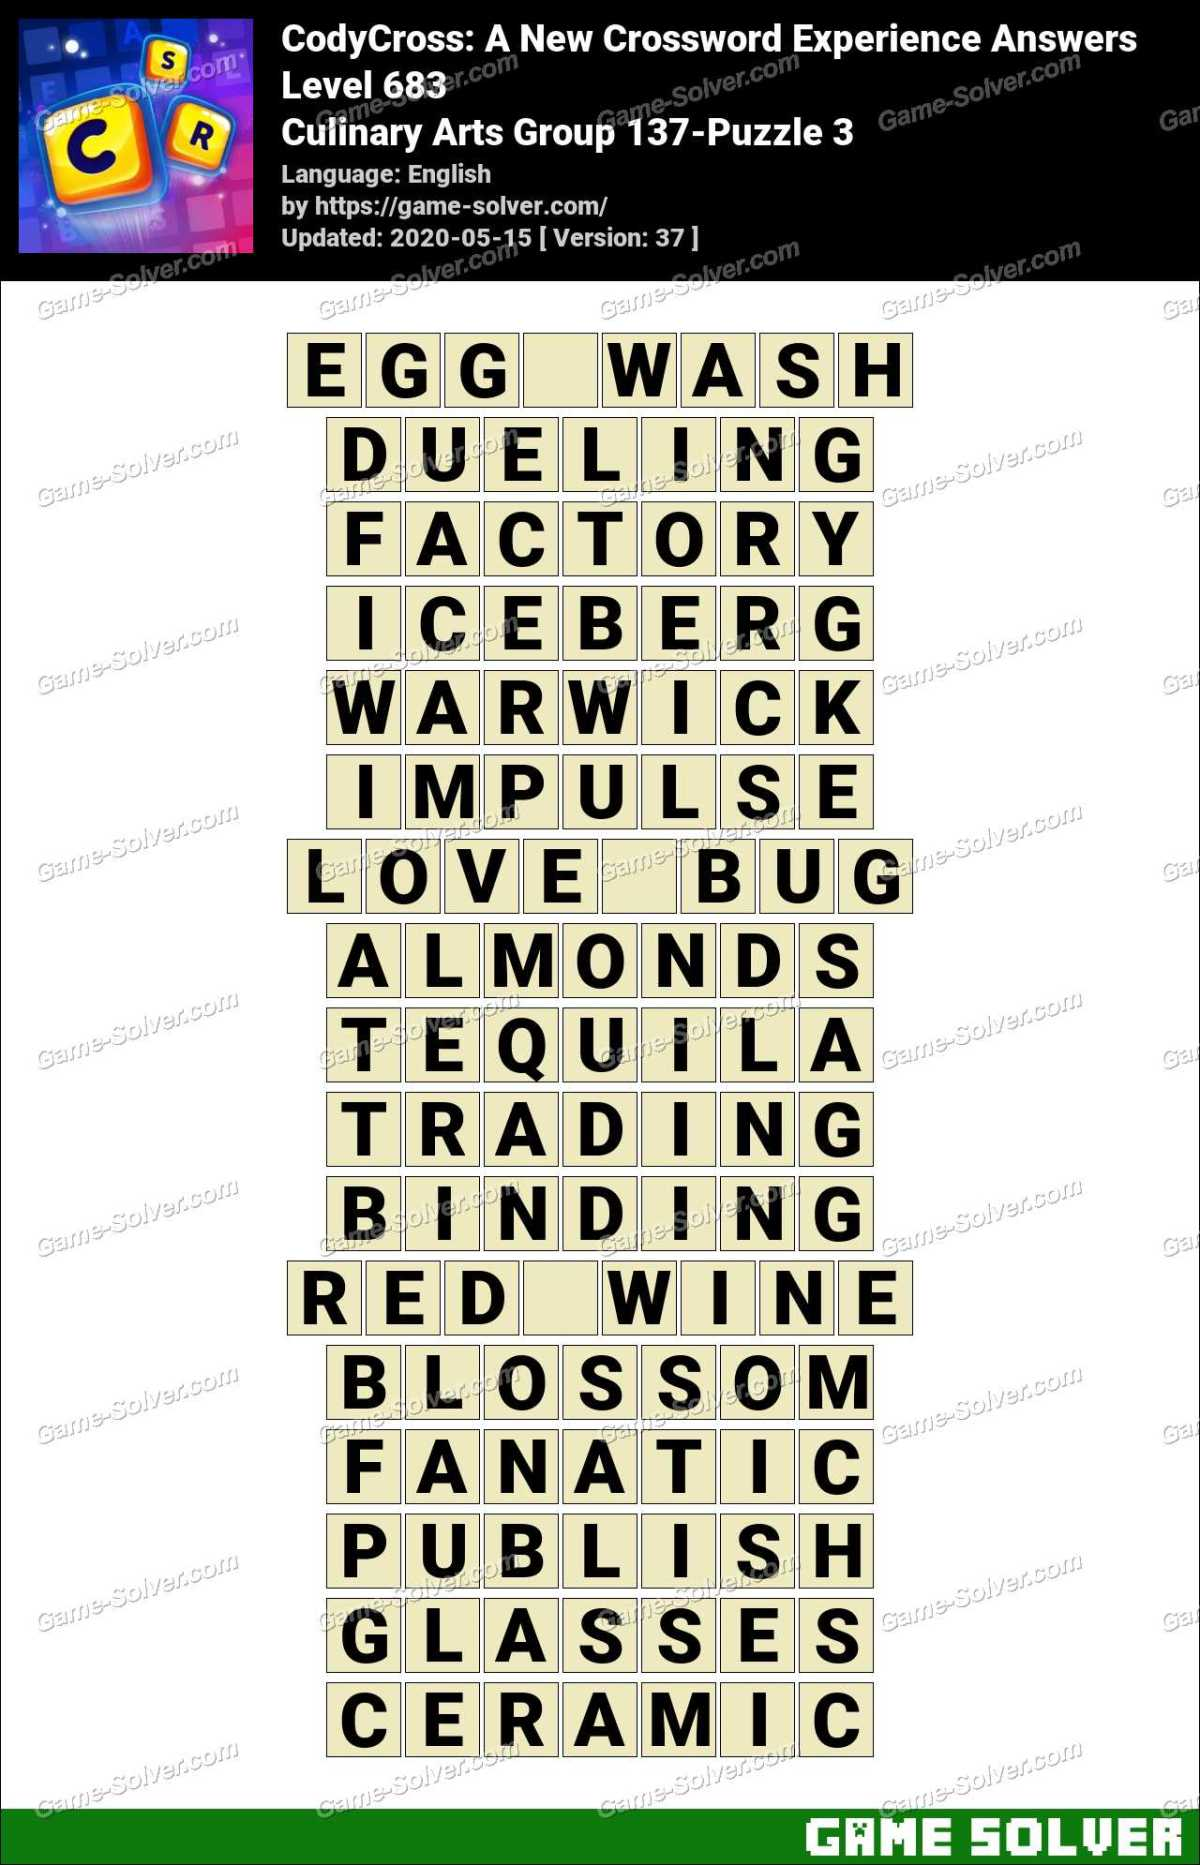 CodyCross Culinary Arts Group 137-Puzzle 3 Answers